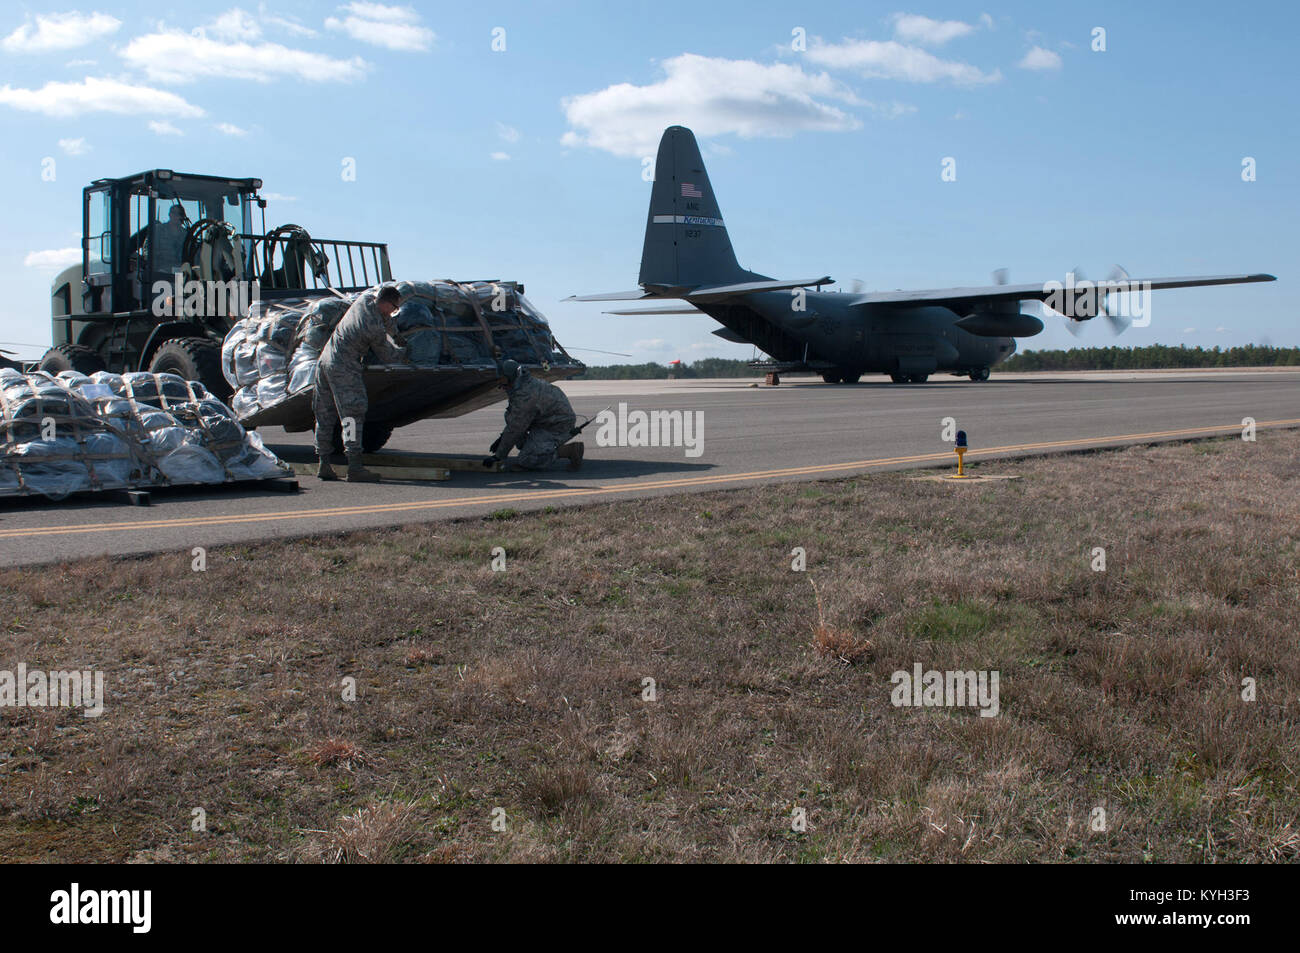 Pallets of cargo are offloaded from a Kentucky Air Guard C-130 during an Engine Running Offload at Joint Base McGuire Stock Photo